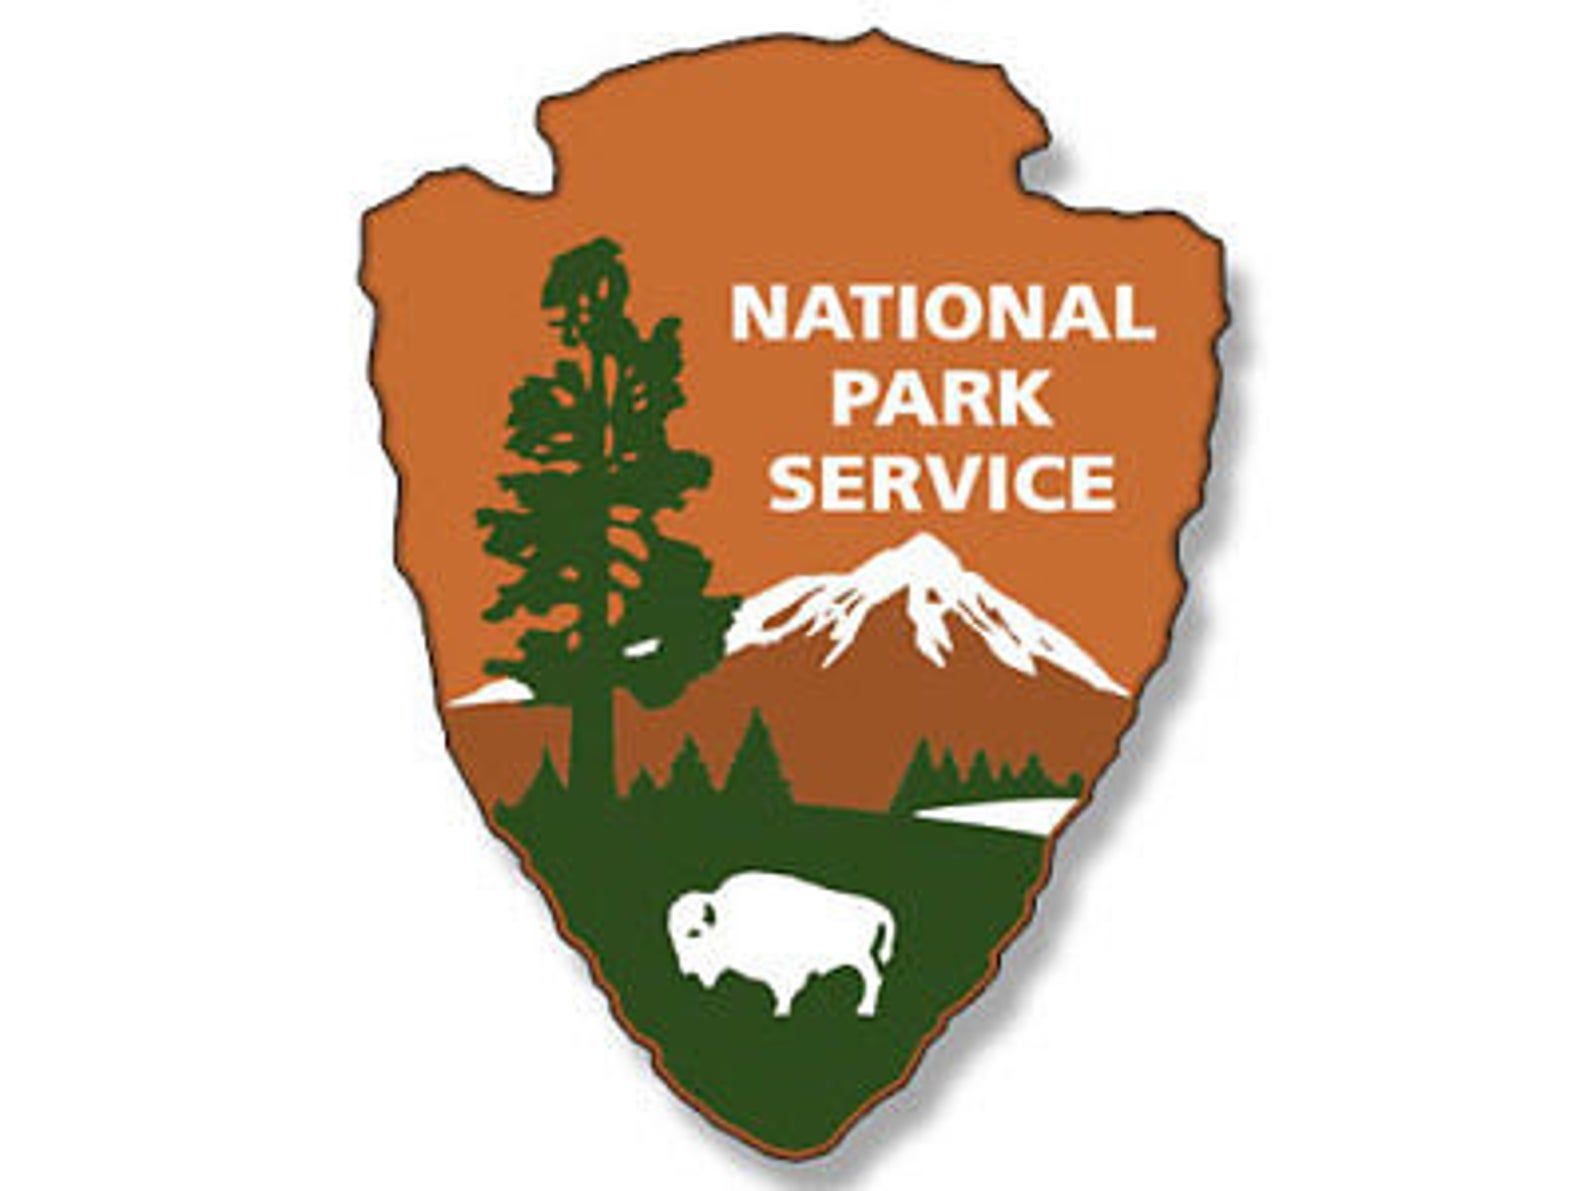 2x3 inch NATIONAL PARKS SERVICE Arrowhead Shaped Logo